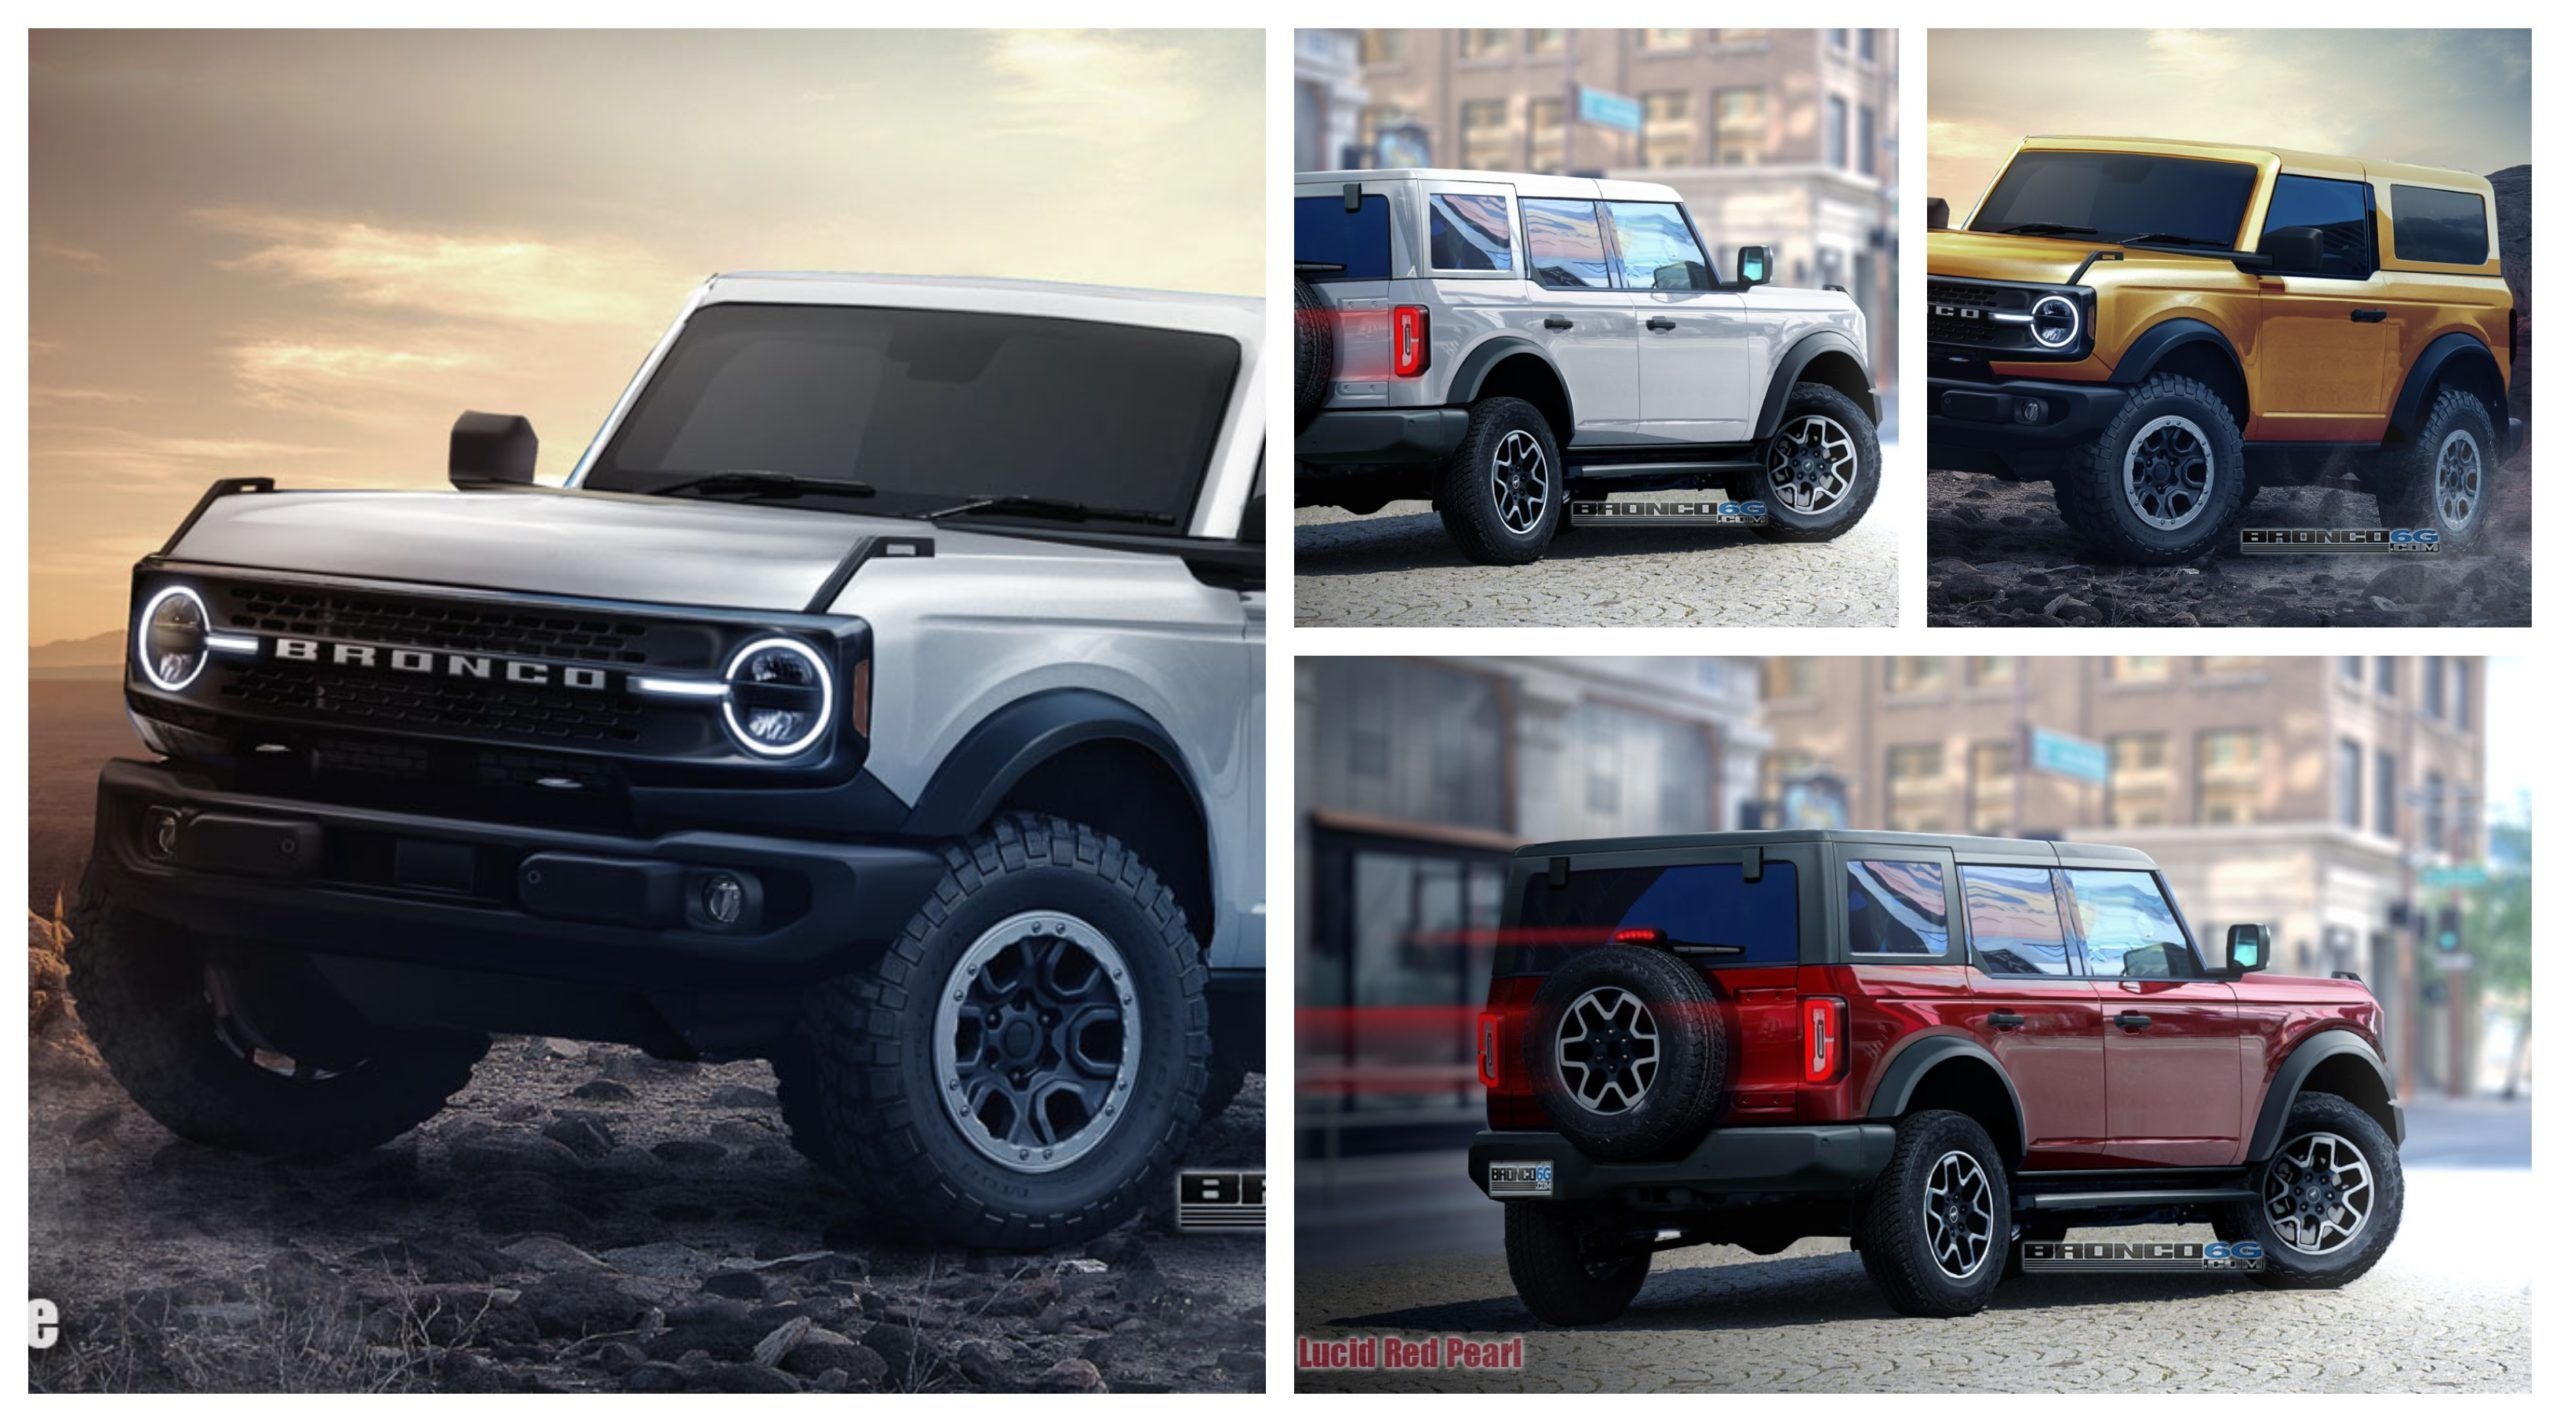 We Bring To You Photo Realistic Preview Cgi Of The Production 2021 Ford Bronco In 2 Door And 4 Door Styles Shown In All The In 2020 Bronco Ford Bronco Broncos Images